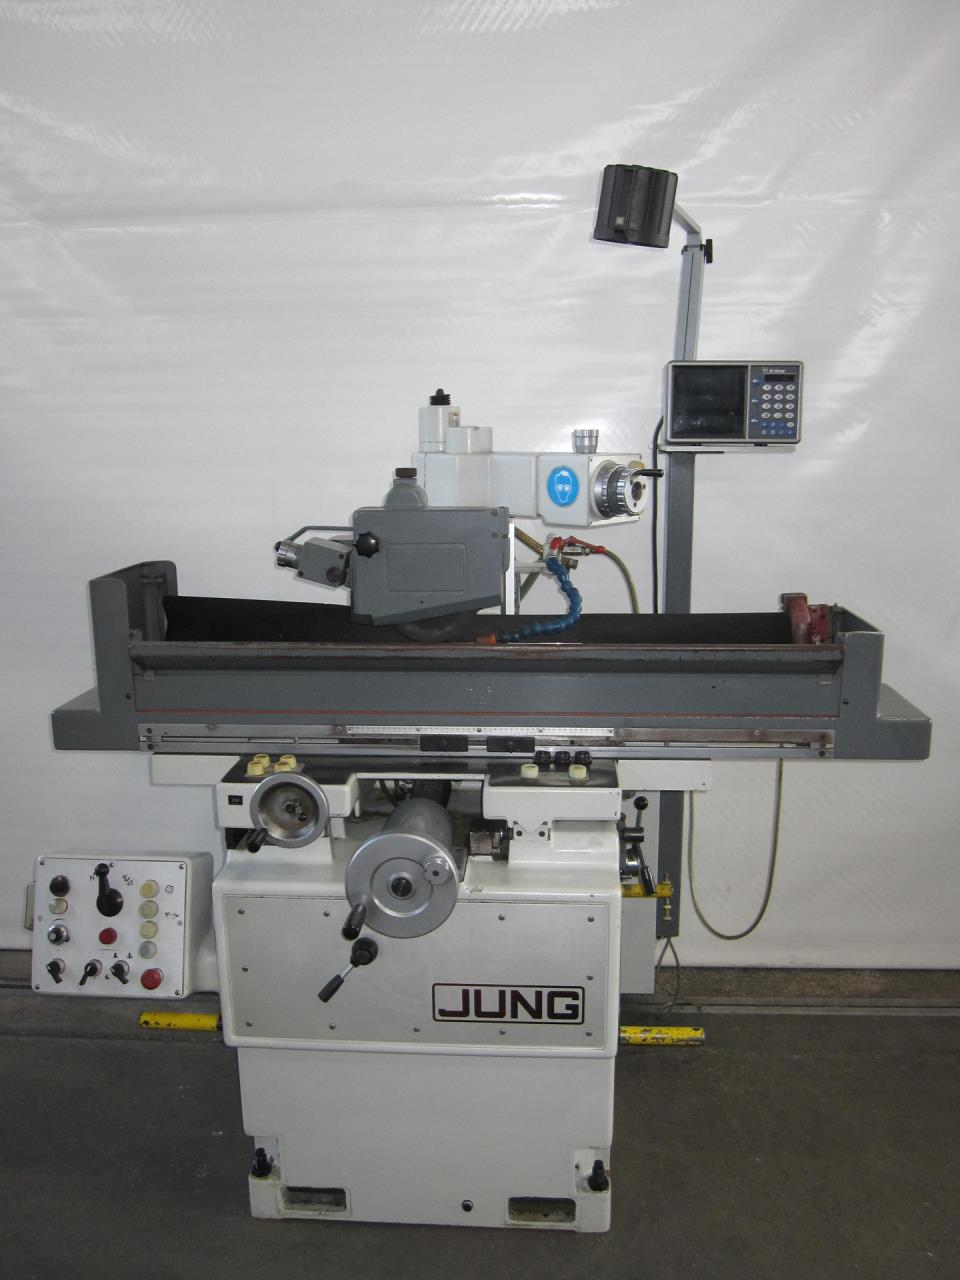 Surface grinding machine JUNG JF 415 P